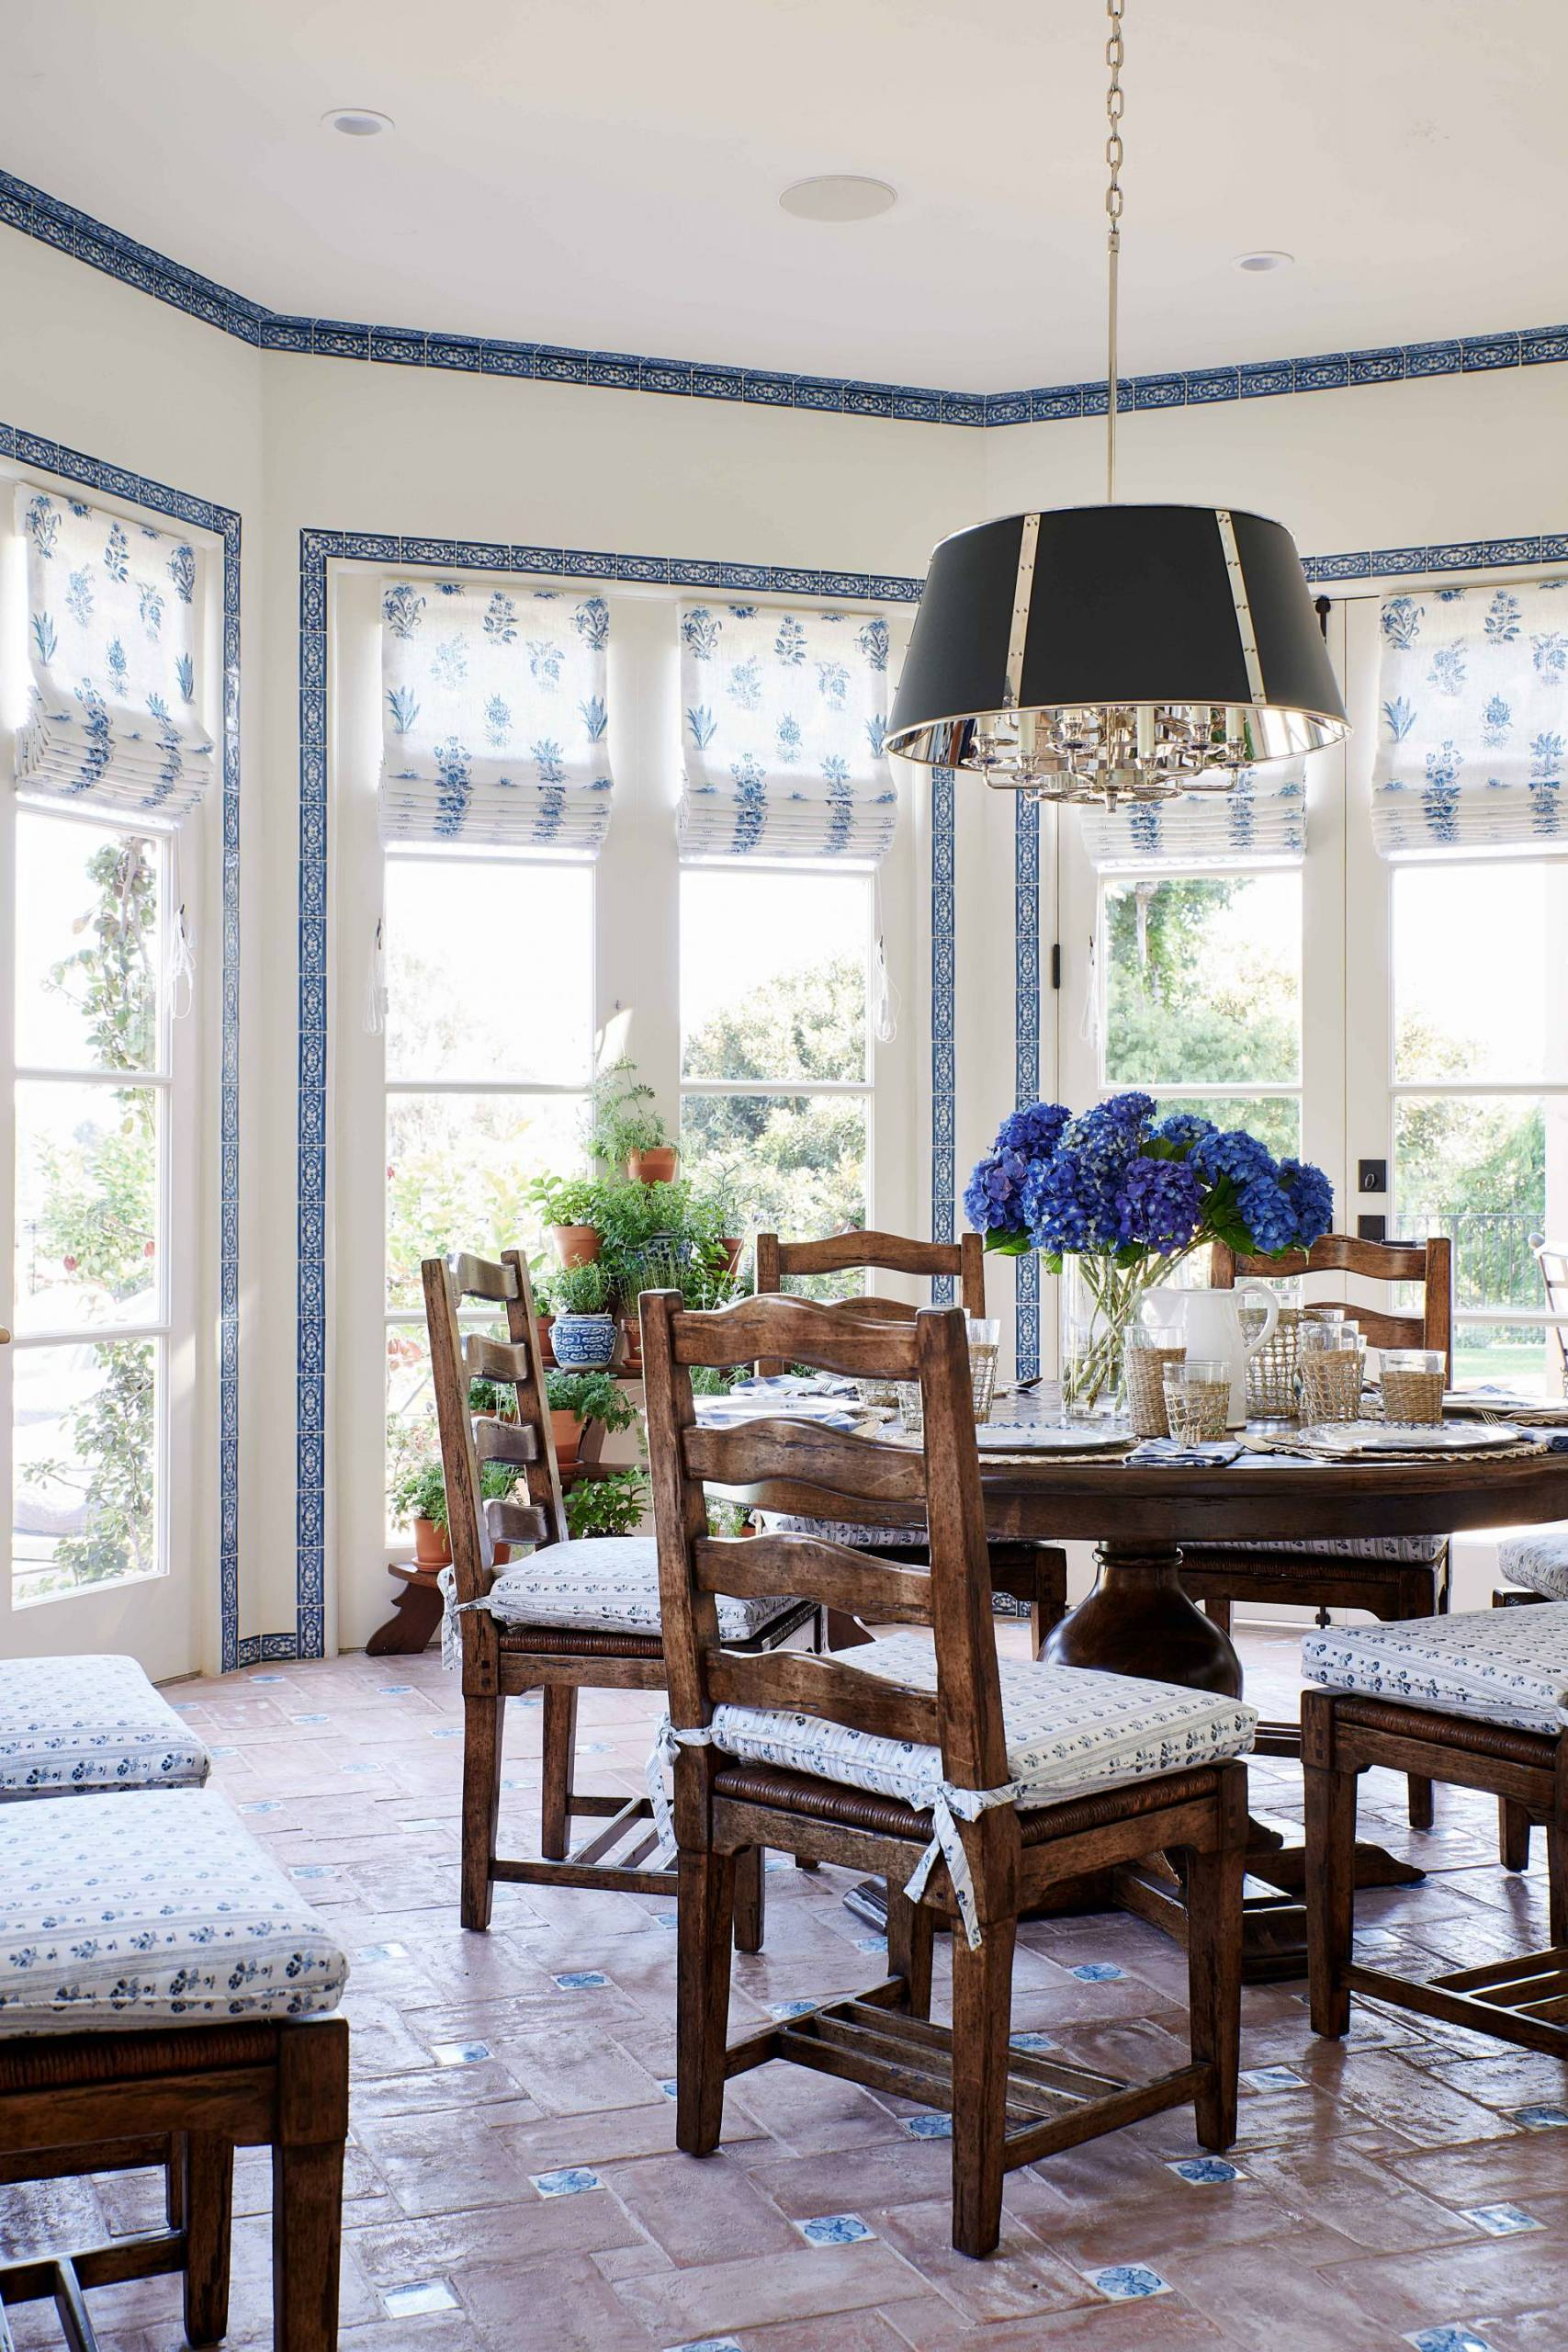 Breakfast Table Upholstered Chairs and Roman Shades